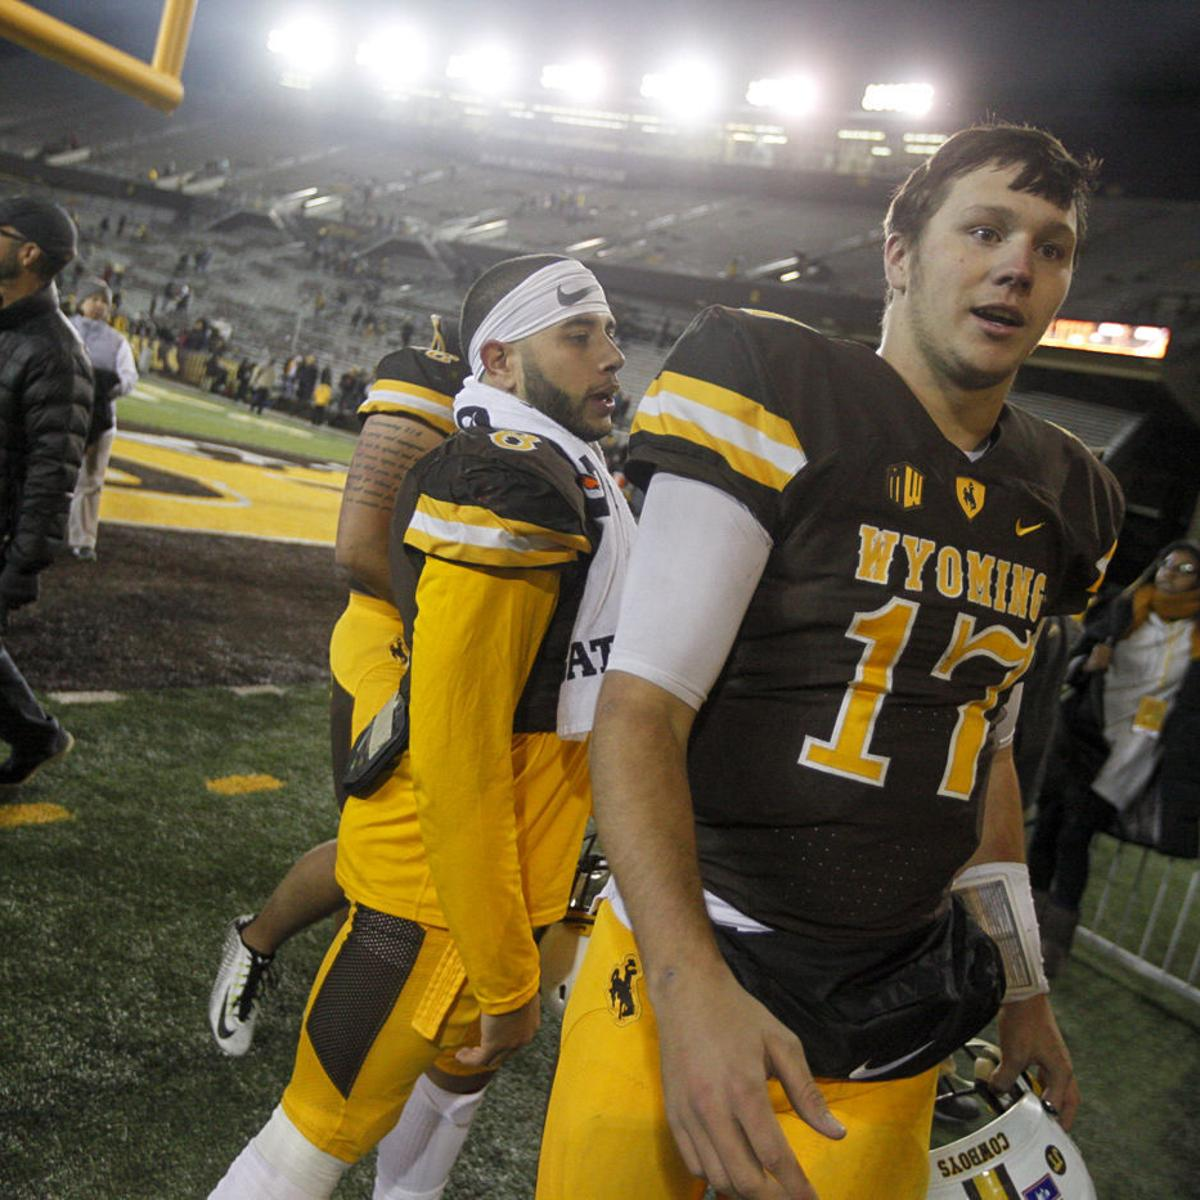 timeless design 240d1 0672a What will Josh Allen's NFL career mean for Wyoming? Let's ...